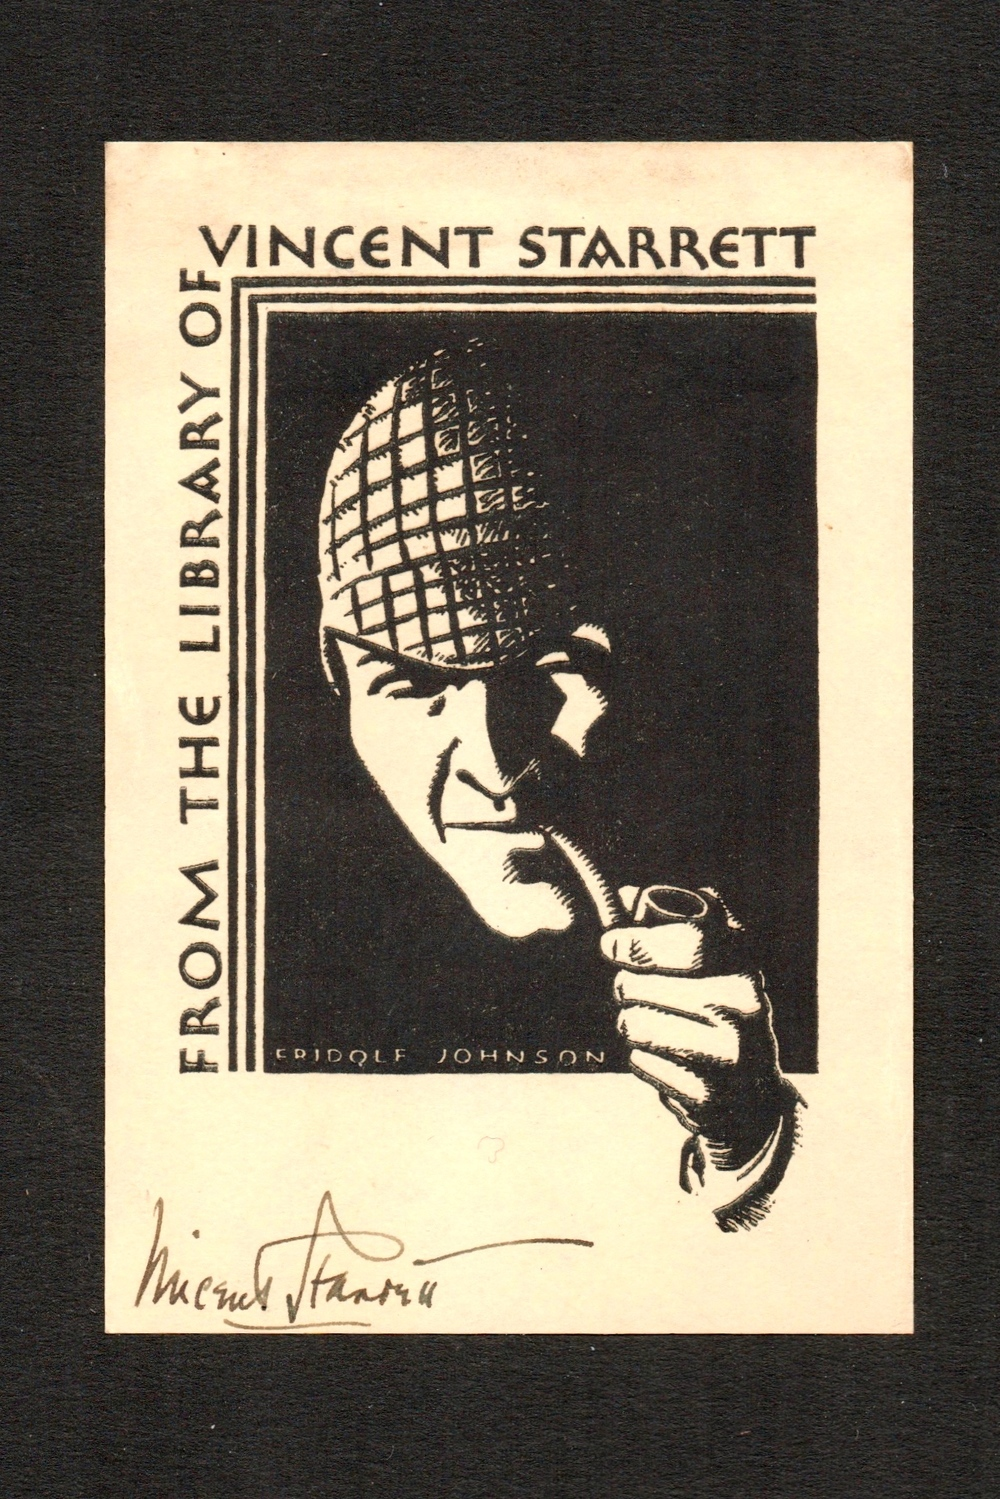 Fridolf Johnson's bookplate for Vincent Starrett, showing a friendly Sherlock Holmes, circa 1931.